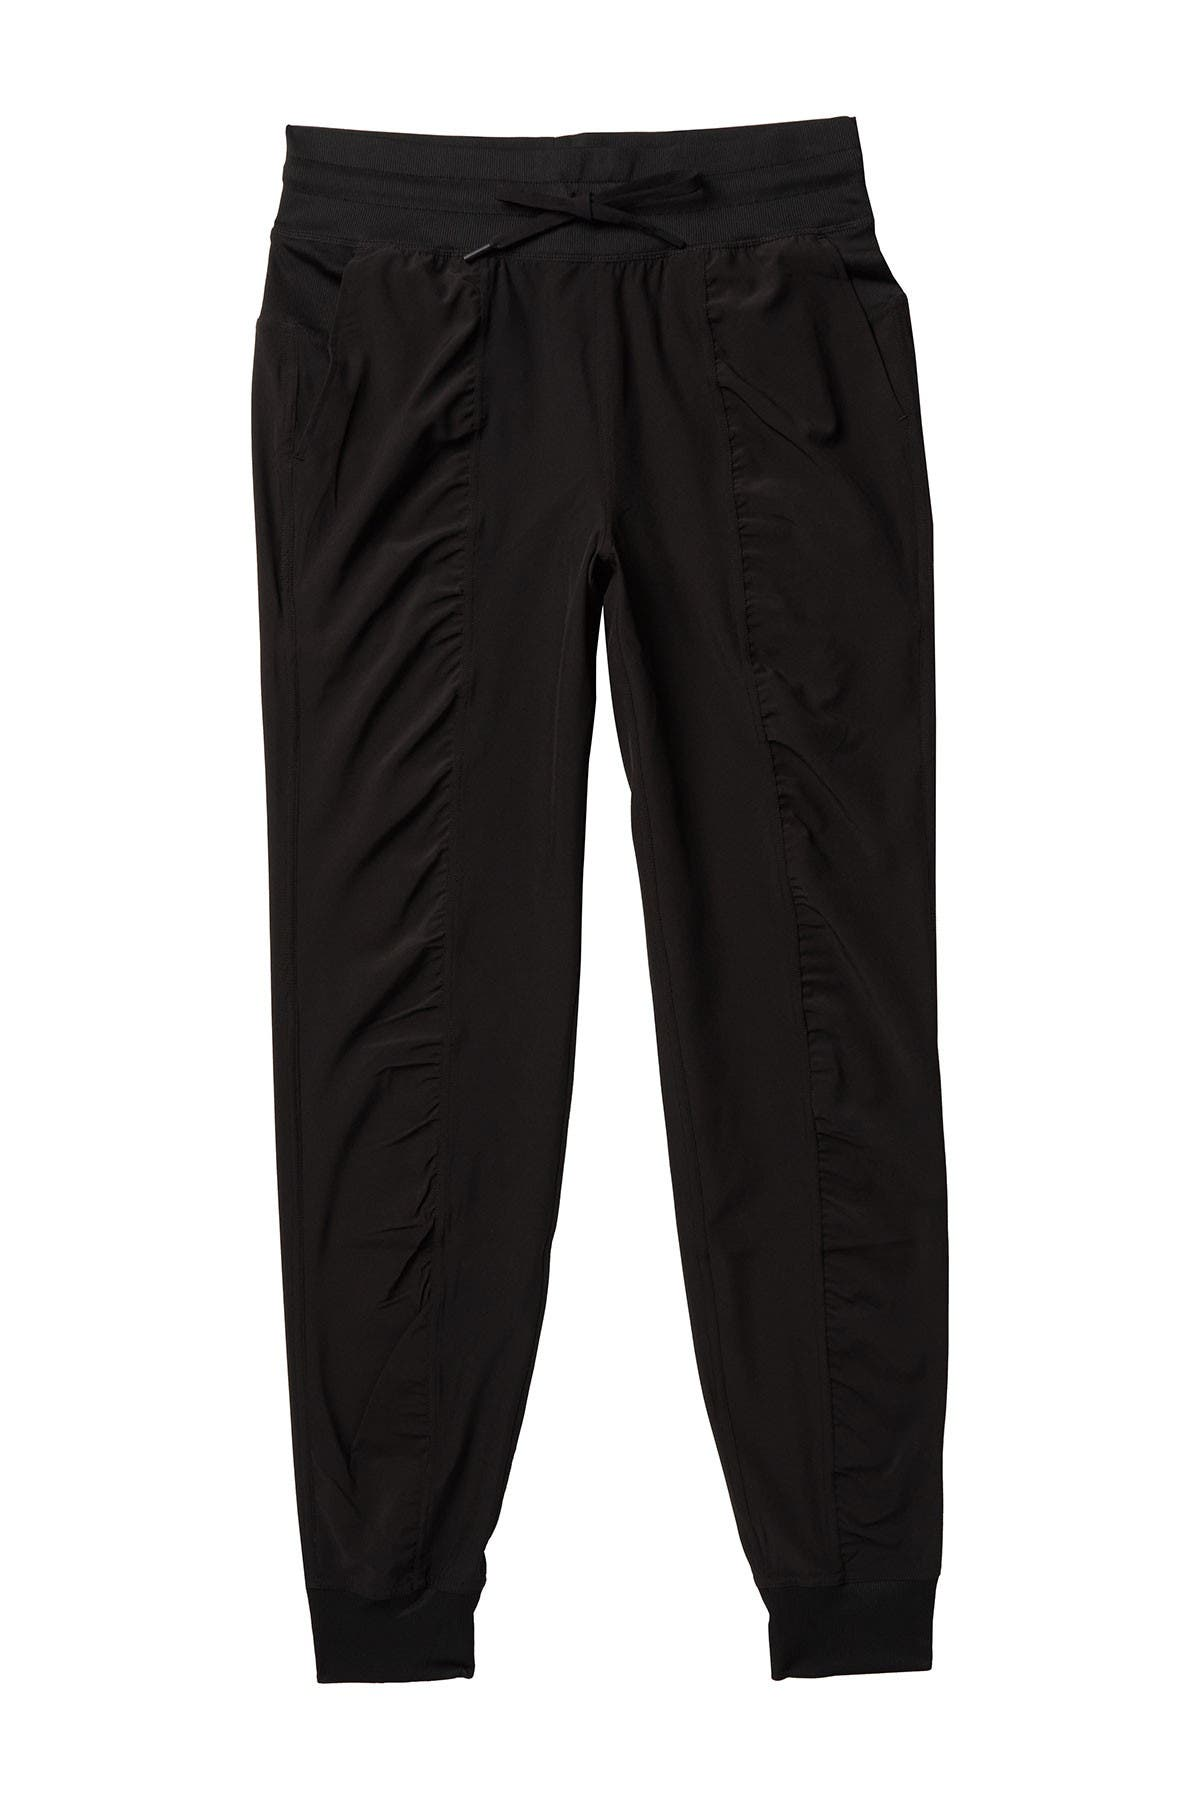 Image of 90 Degree By Reflex Woven Ruched Drawstring Leggings